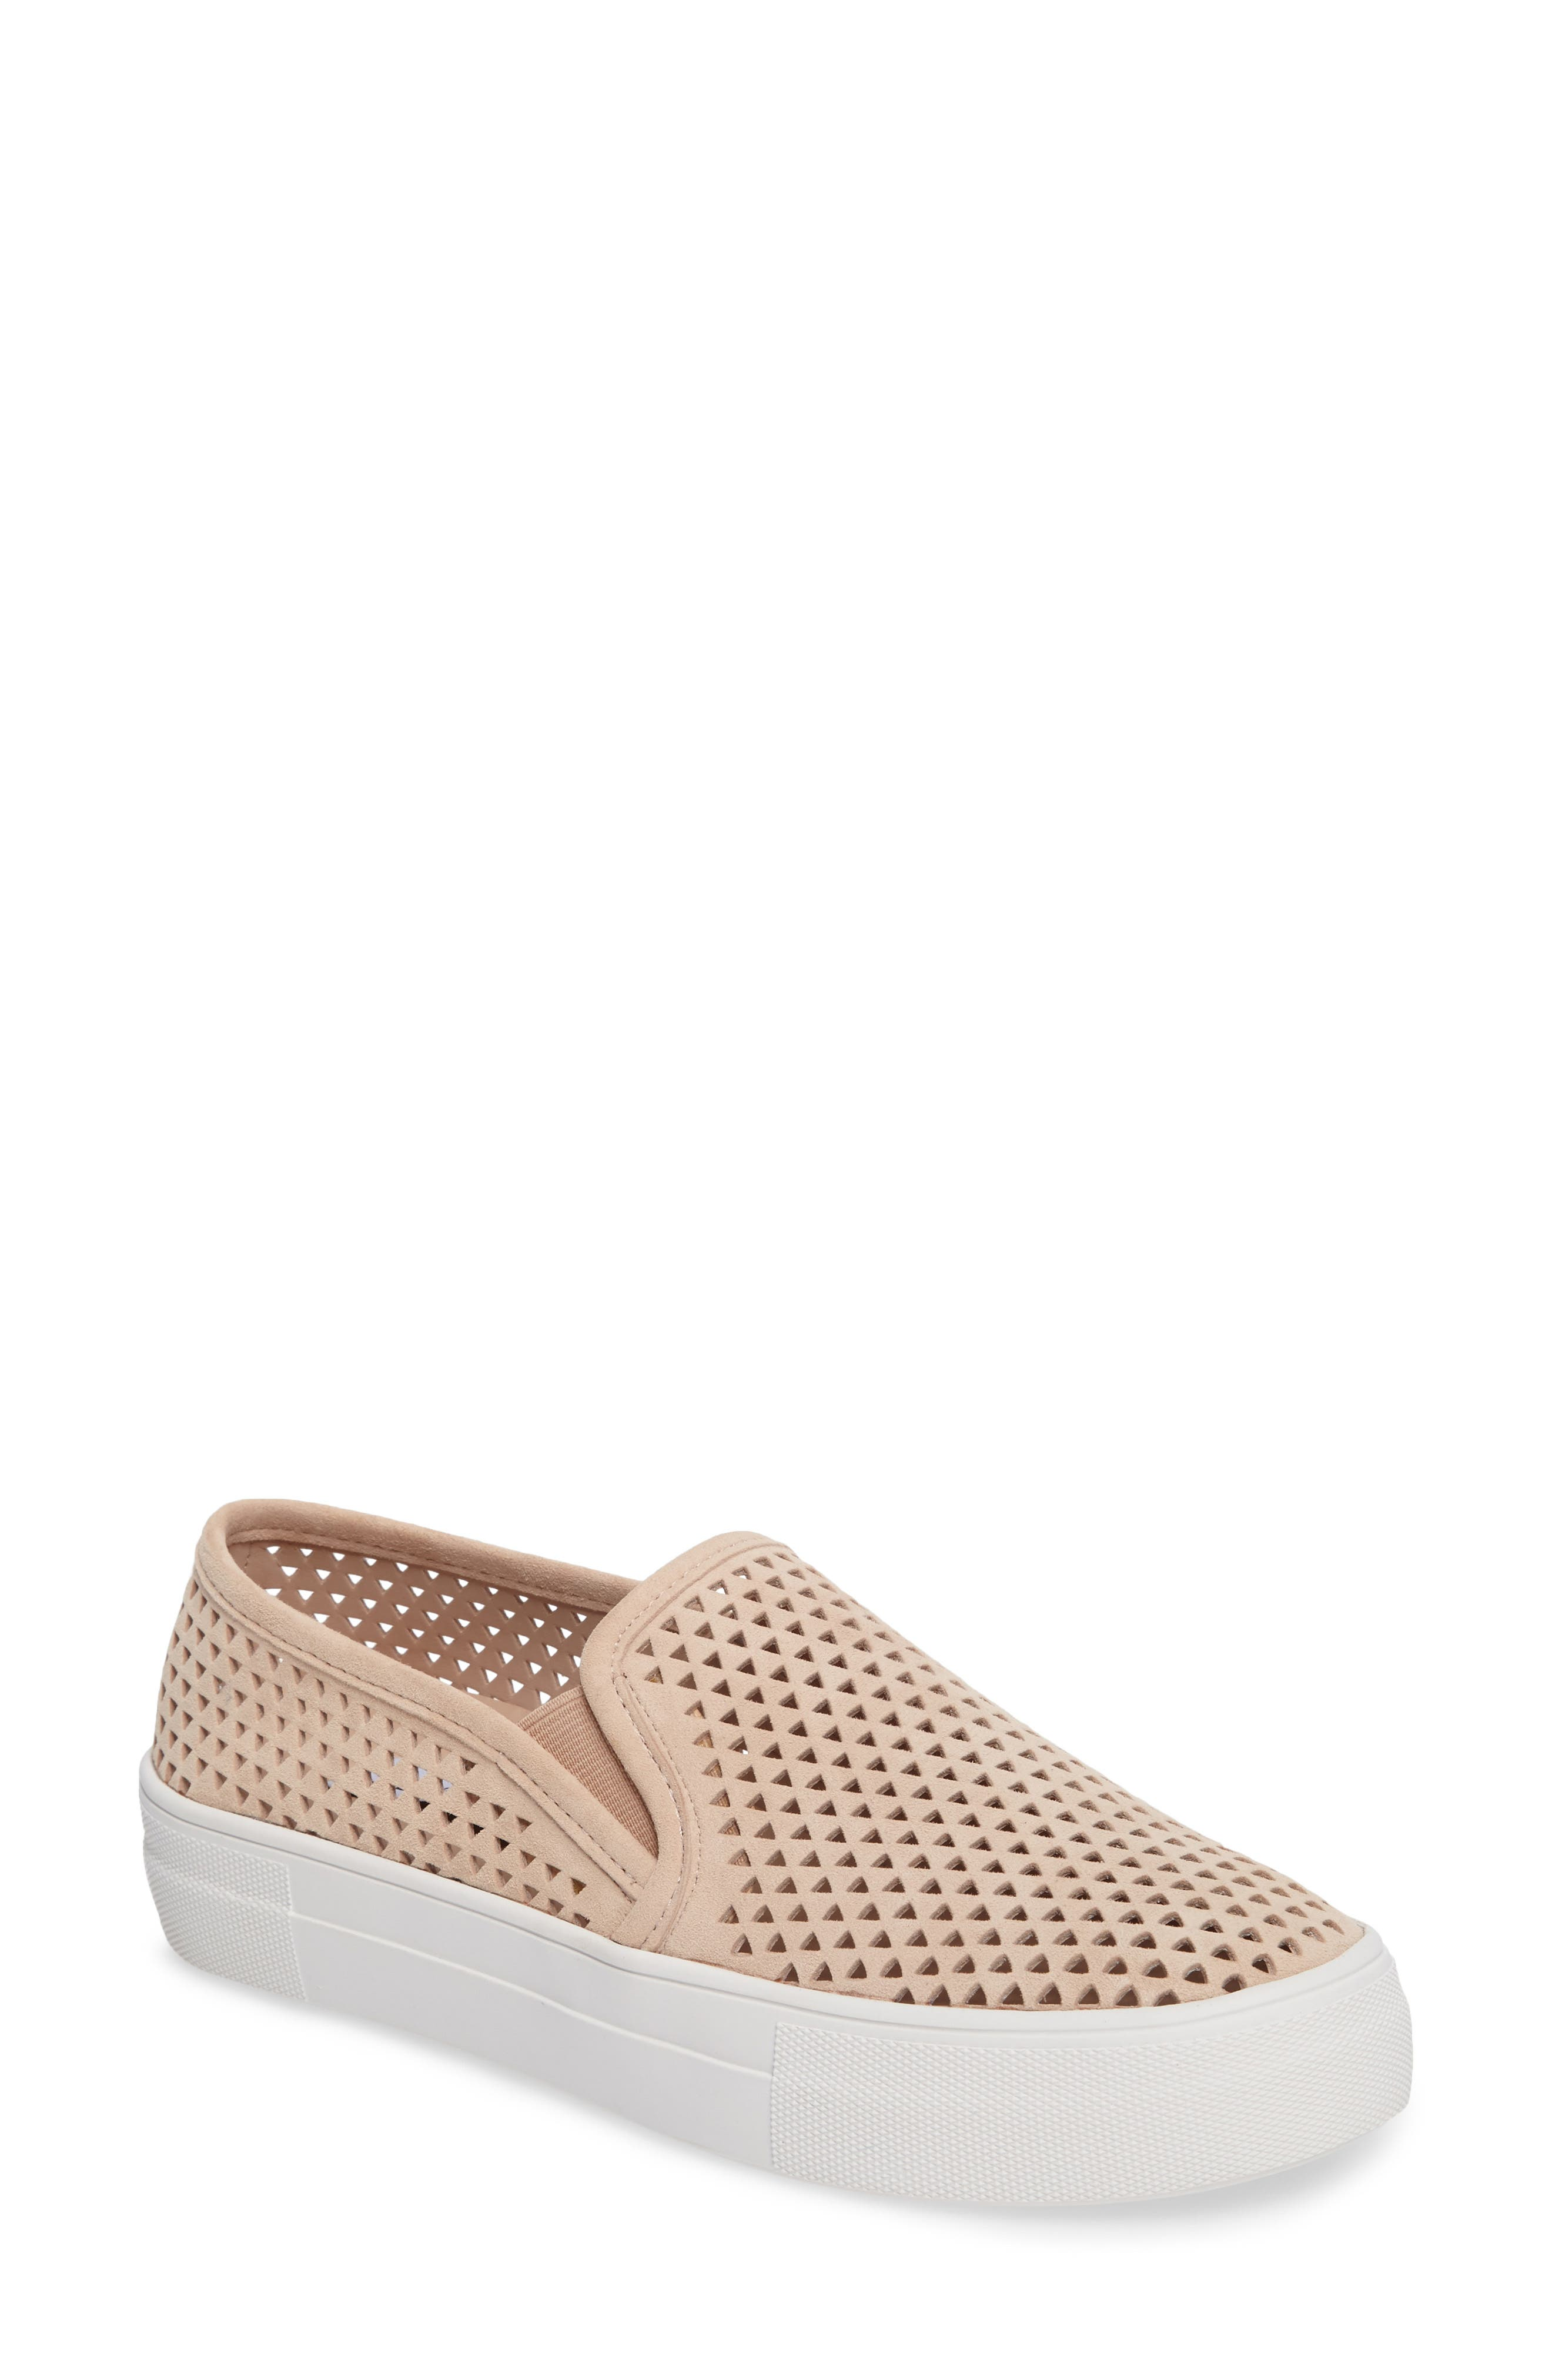 Gills Perforated Slip-On Sneaker,                         Main,                         color, Natural Suede